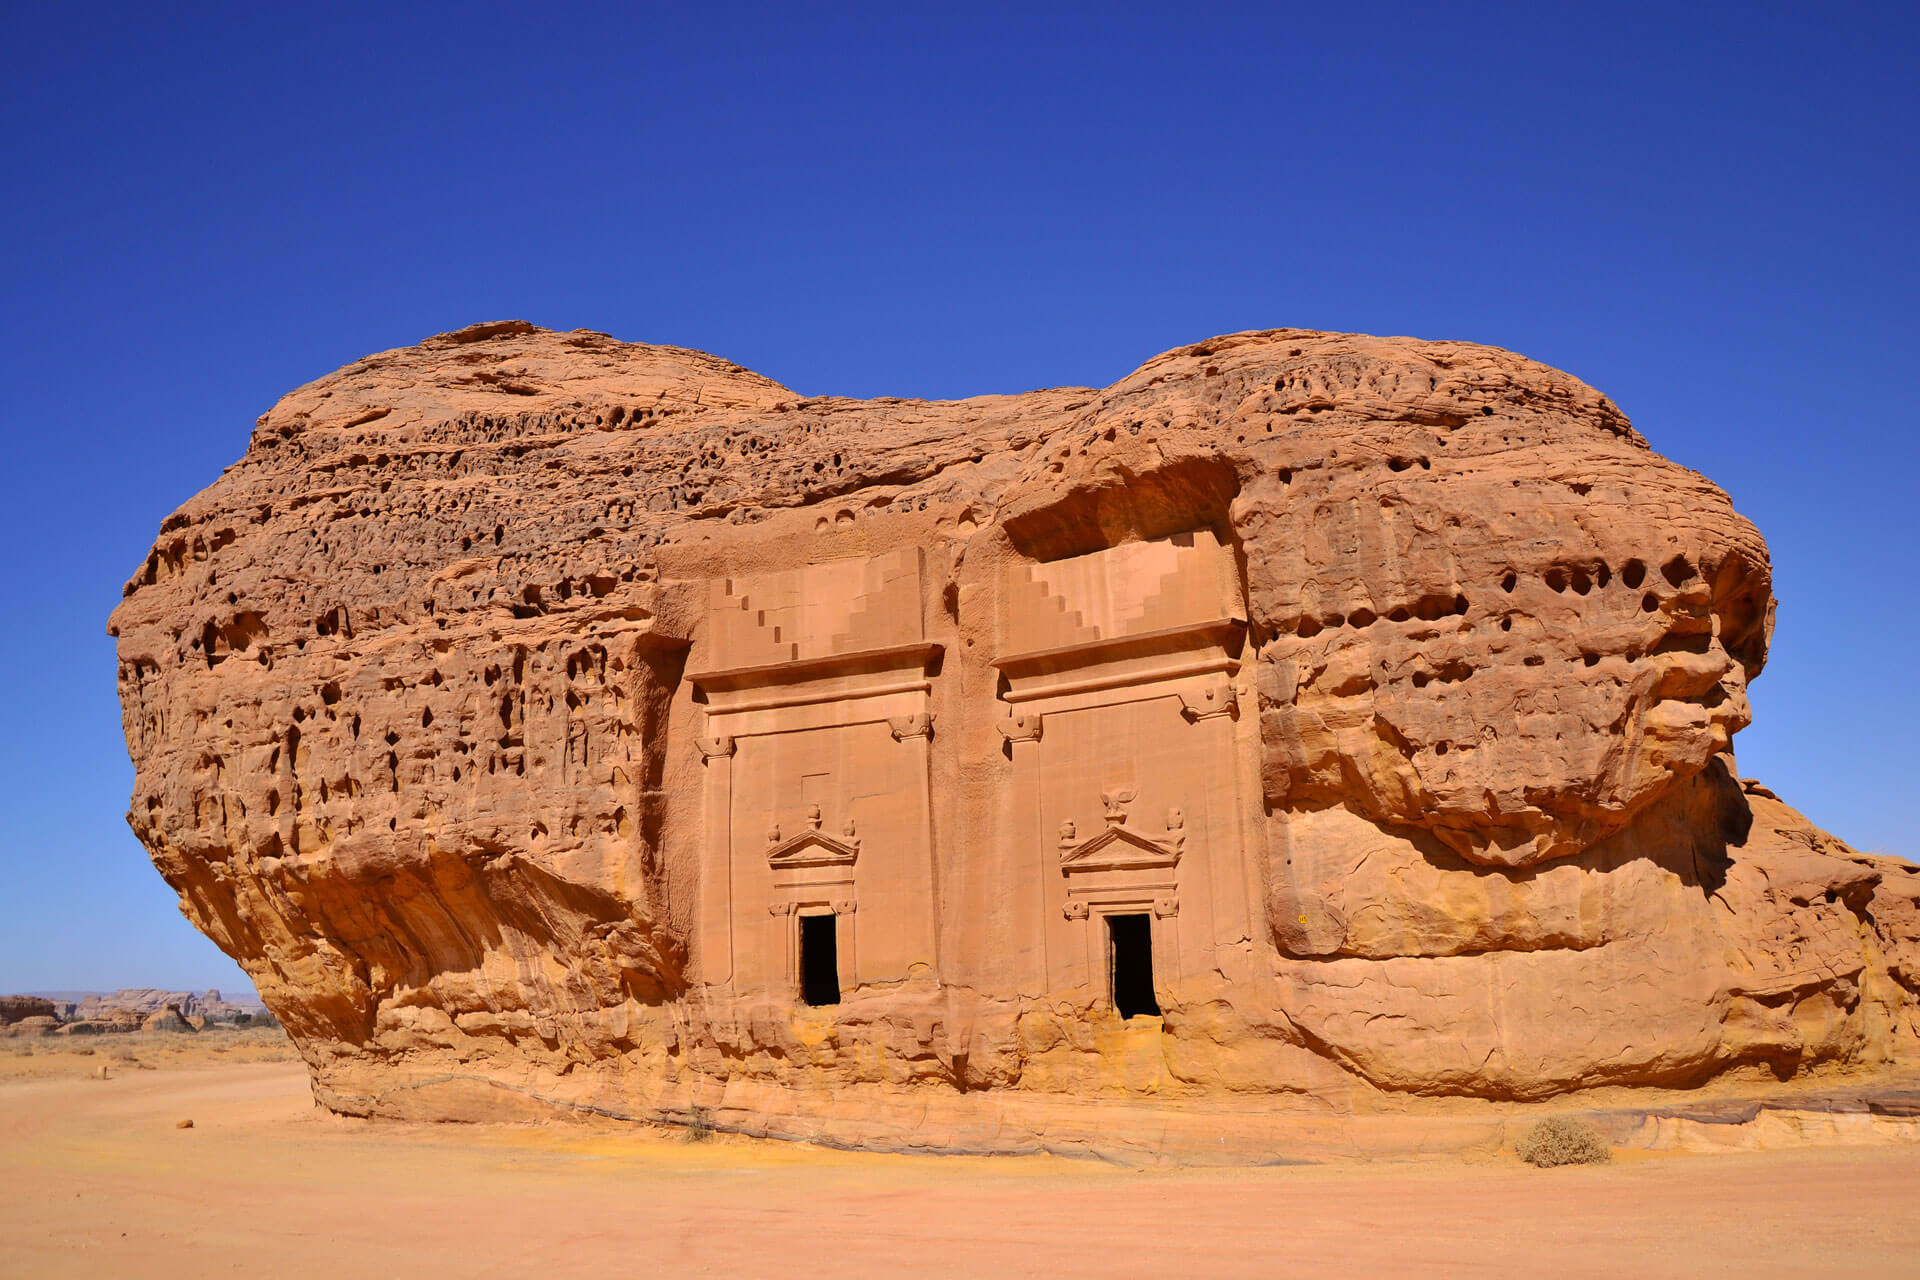 The Best Things to See and Do in Saudi Arabia